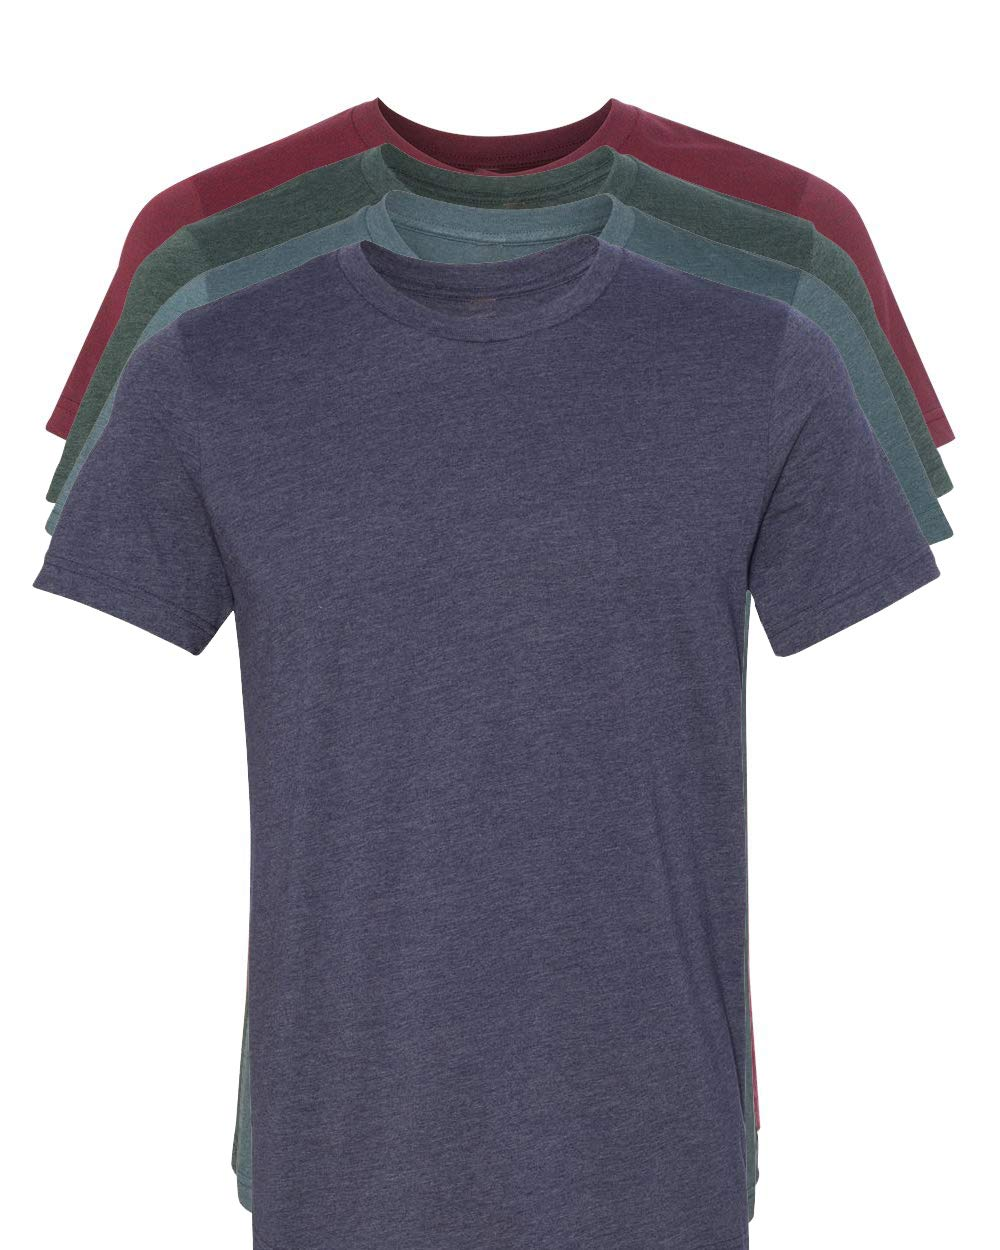 Kennedy Todd 4 Pack Men's Heather Cotton Poly T-Shirt (H Cardinal, H Navy, H Slate, H Forest, X-Large)